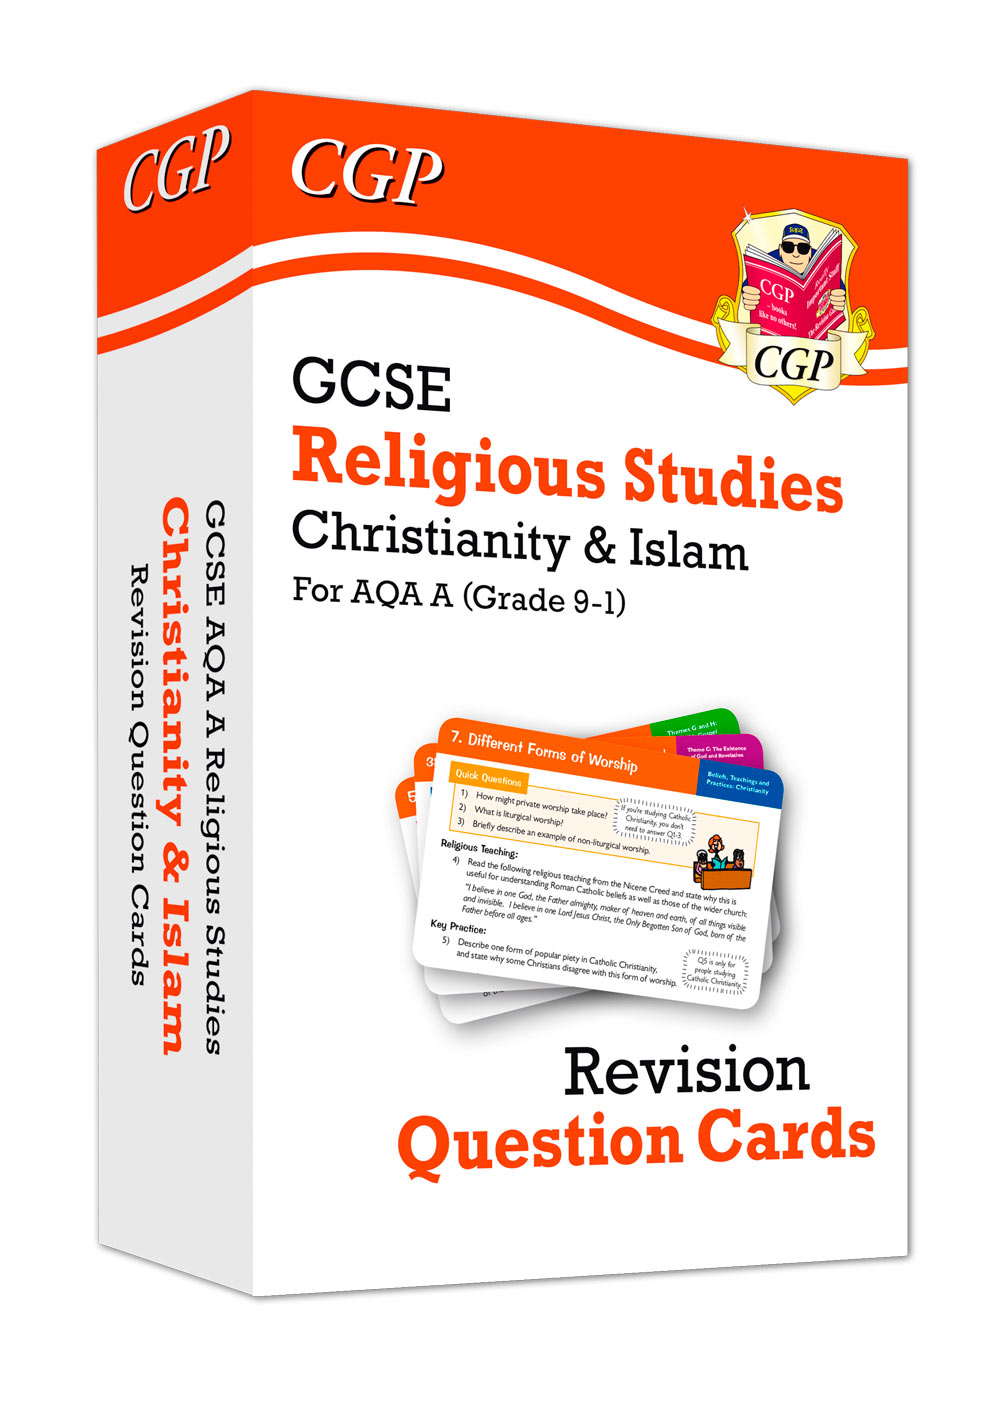 RACIF41 - New 9-1 GCSE AQA A Religious Studies: Christianity & Islam Revision Question Cards